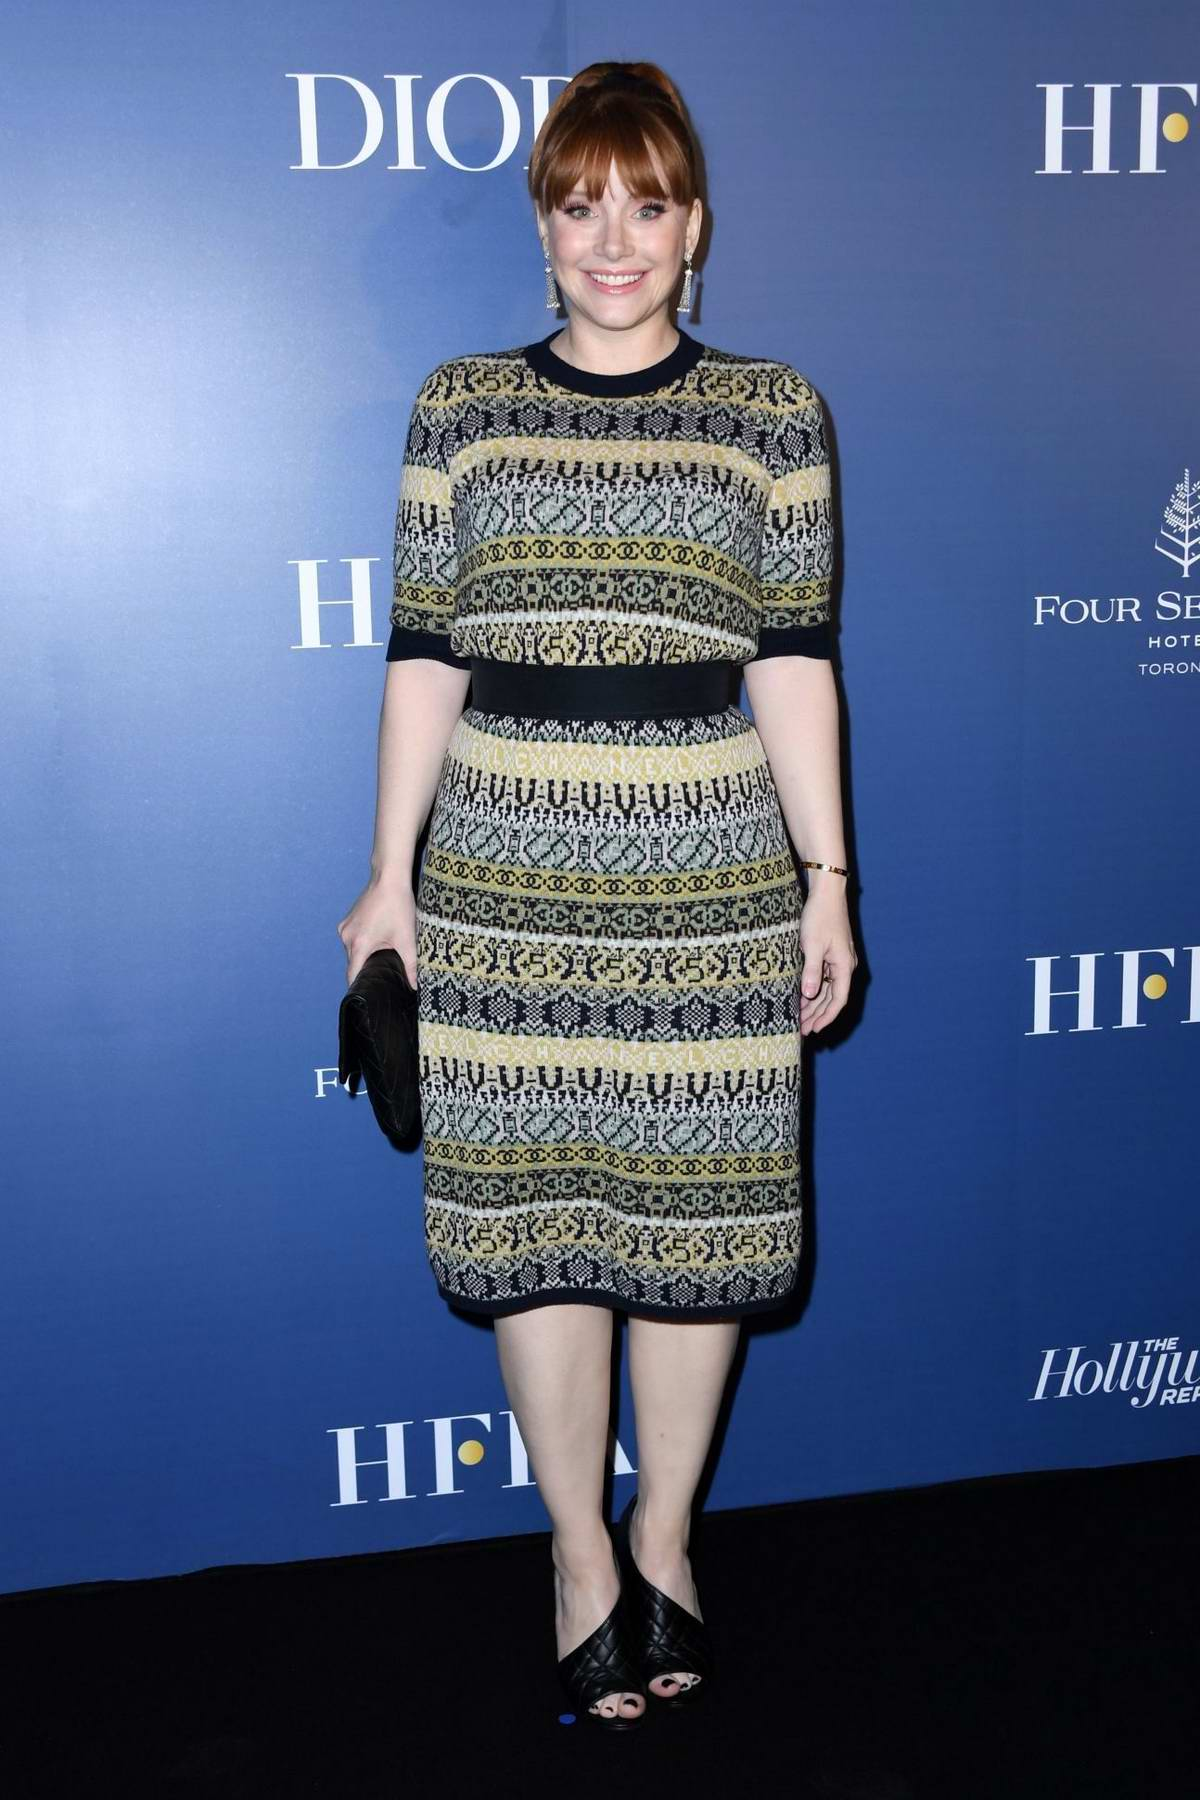 Bryce Dallas Howard attends the Hollywood Reporter party during the 2019 Toronto International Film Festival at the Four Seasons Hotel in Toronto, Canada